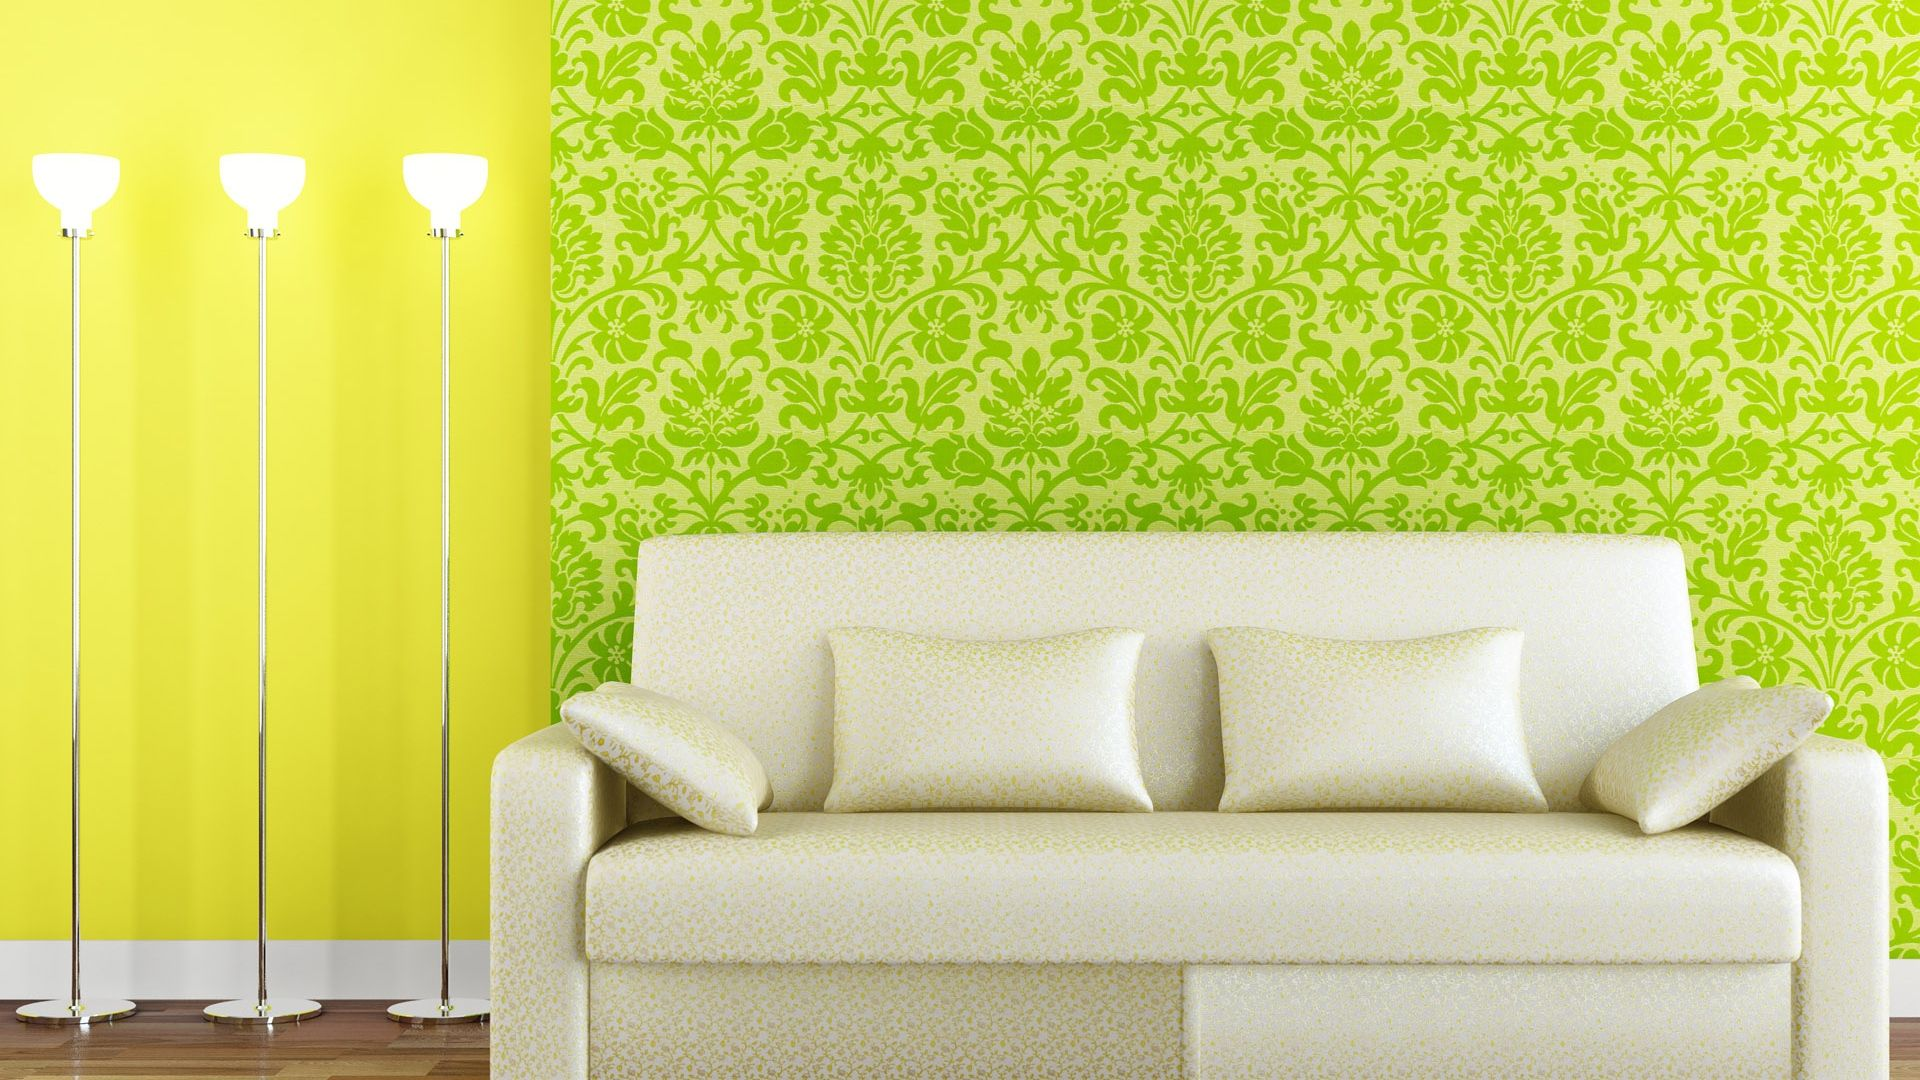 sofa, lamps, wall - http://www.wallpapers4u.org/sofa-lamps-wall ...